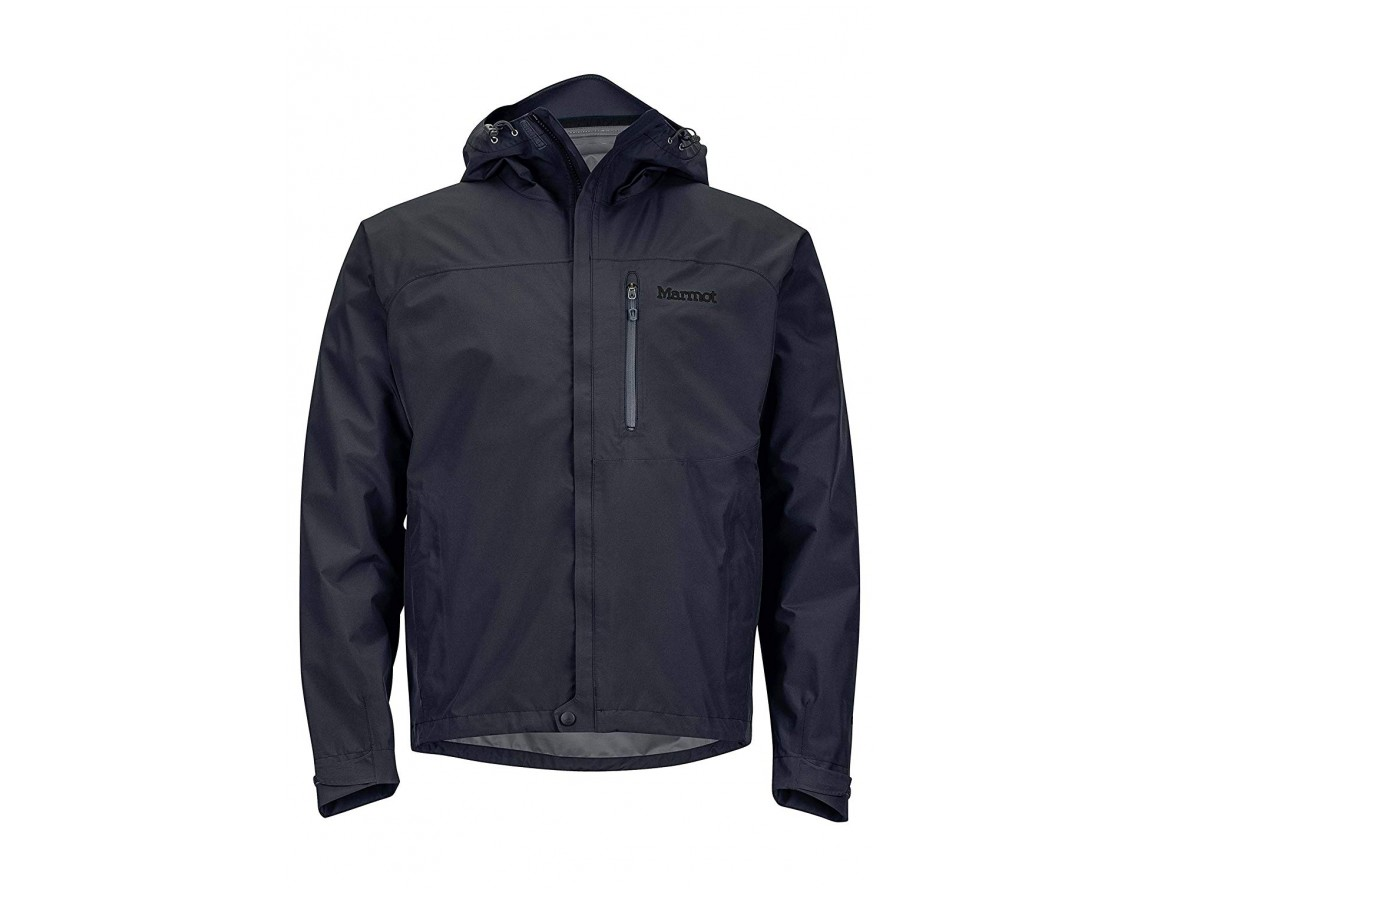 This jacket is comfortable to wear in layers.